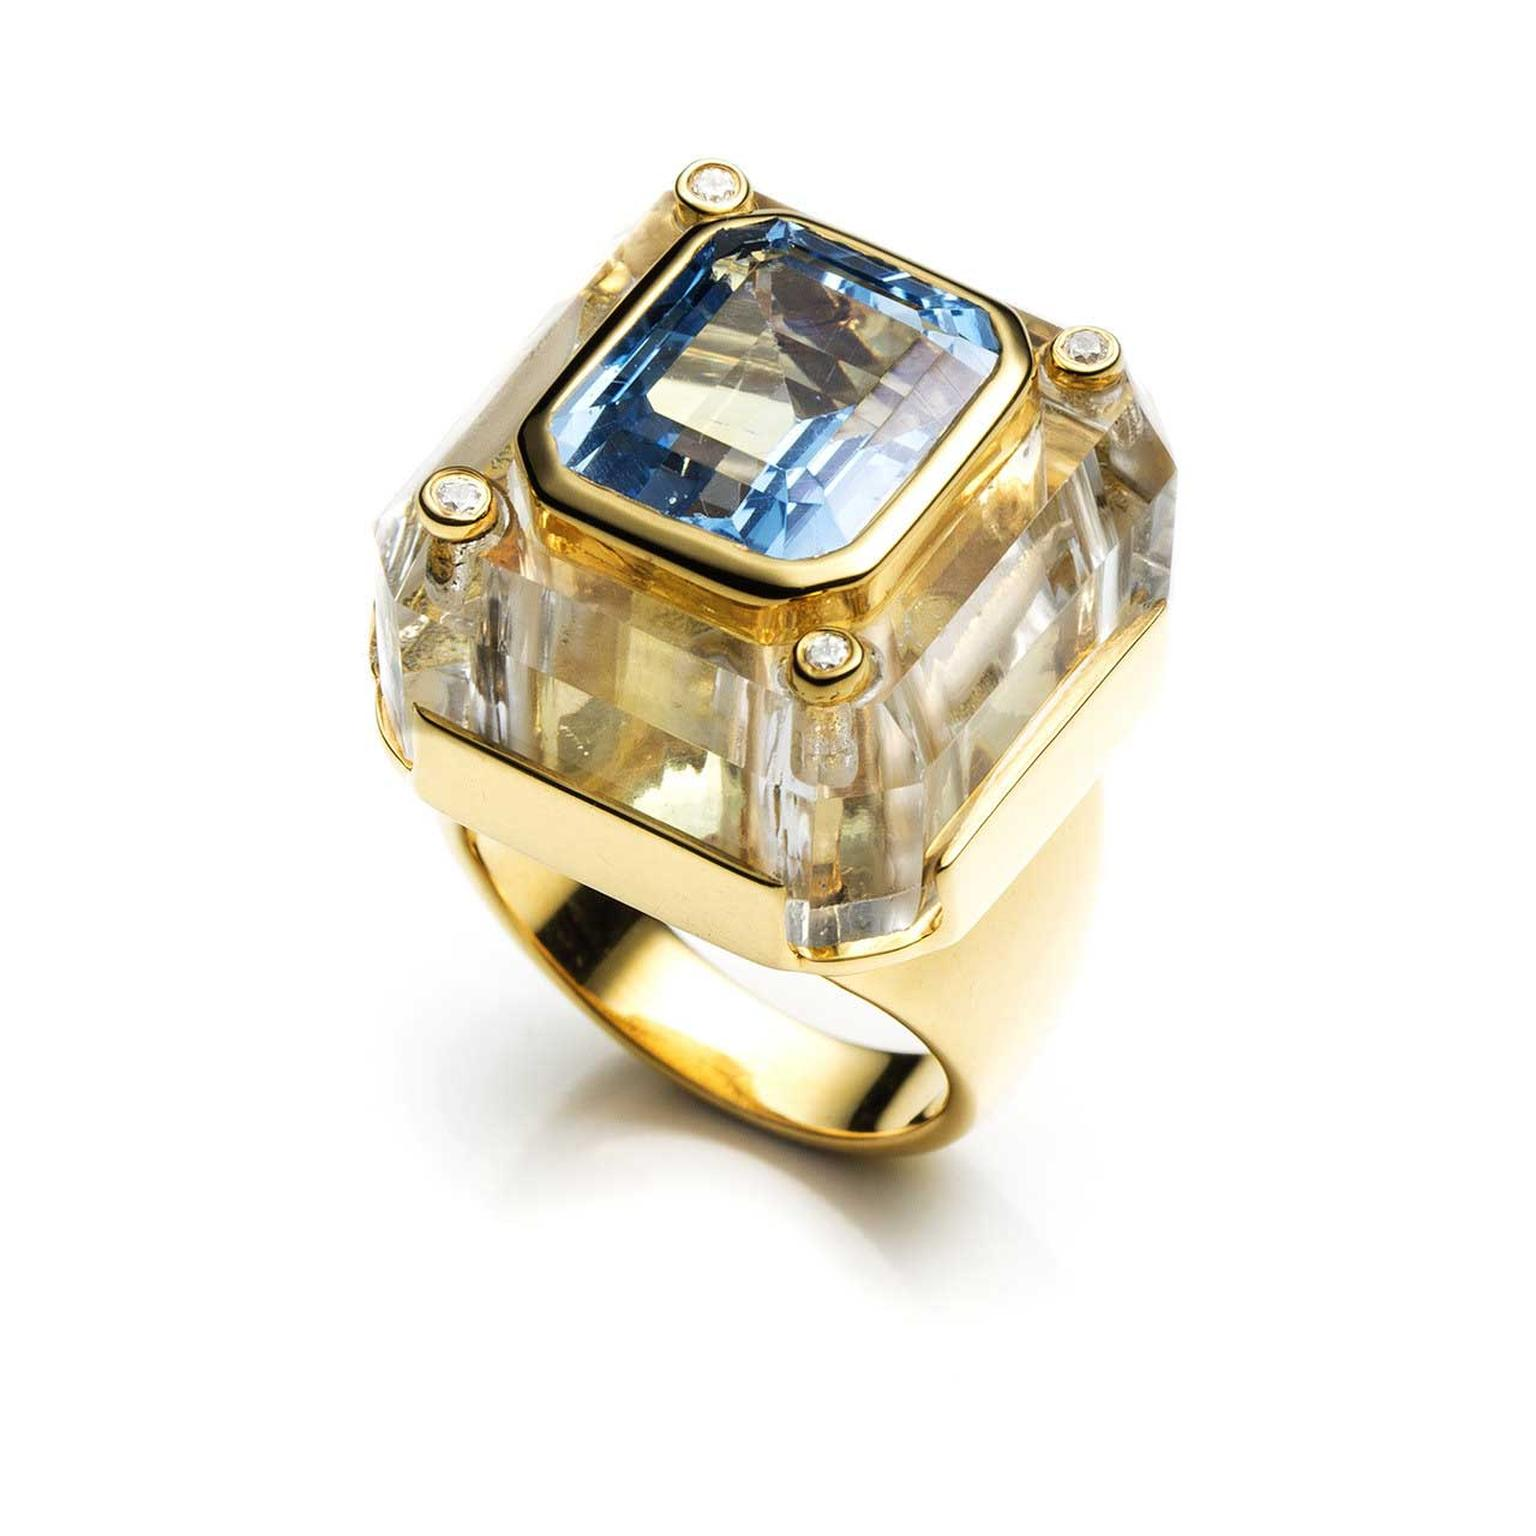 Kara Ross Cava ring with rock crystal and blue topaz